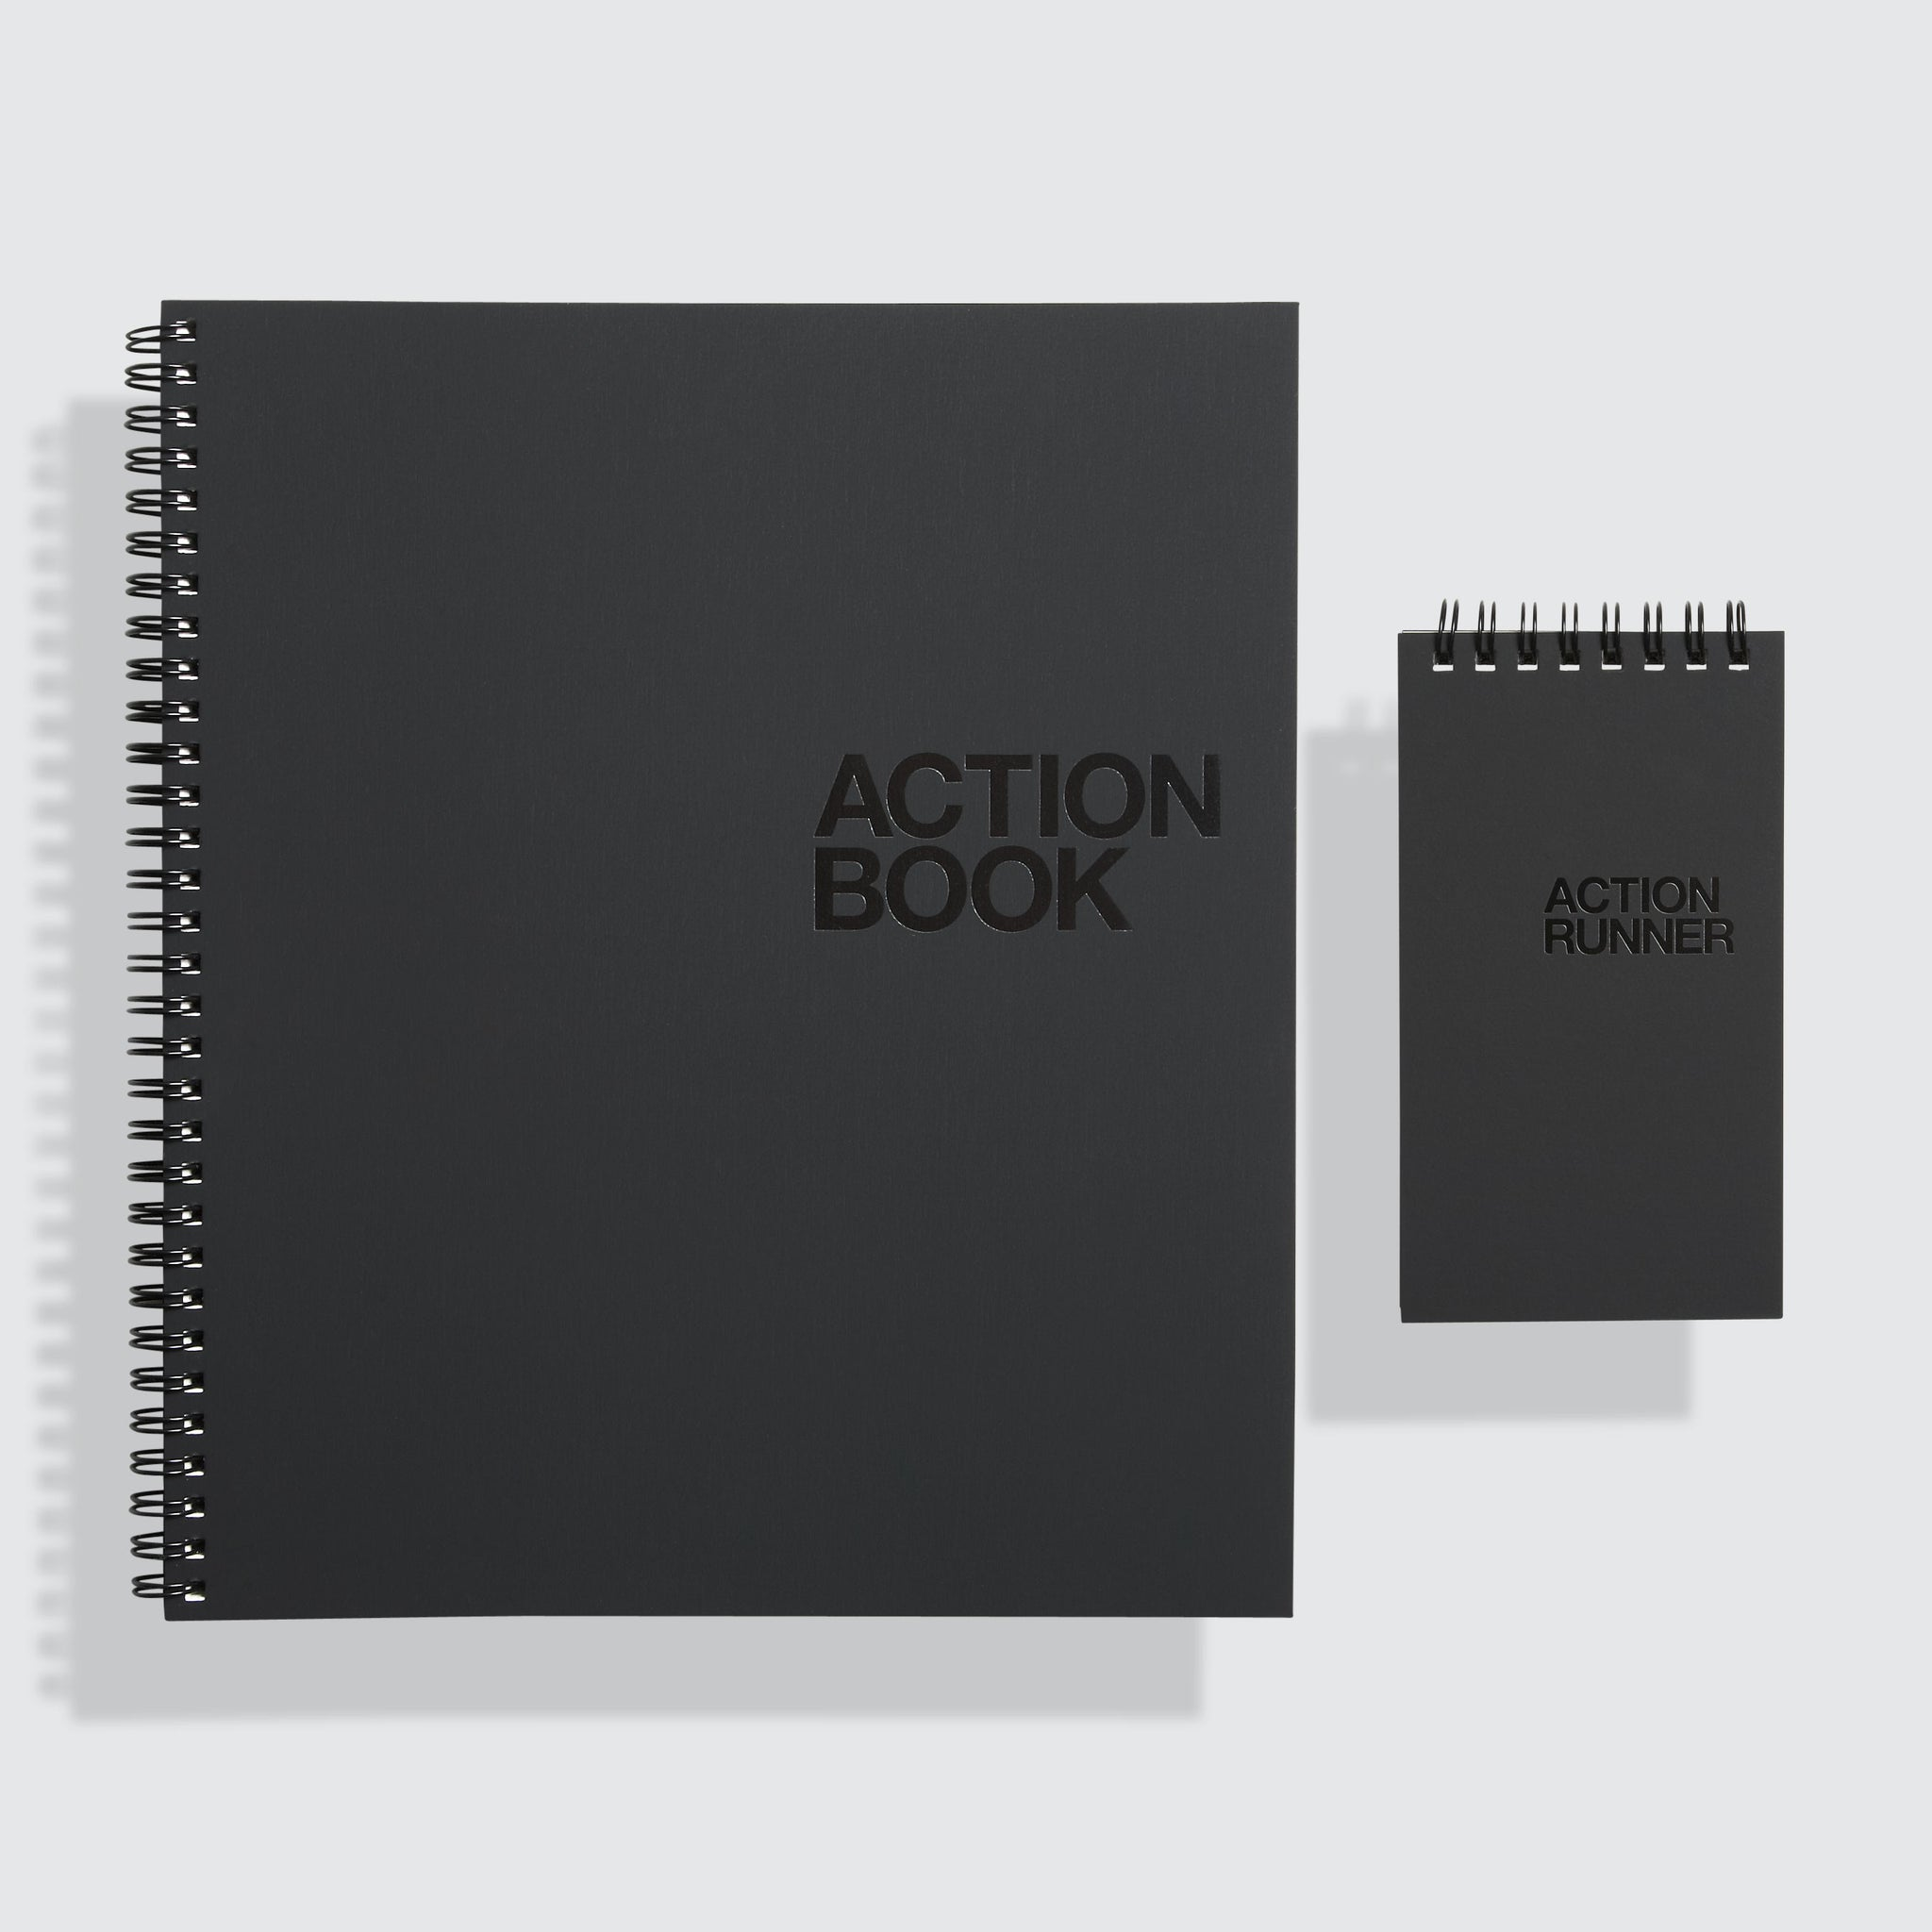 Action Book + Runner Bundle